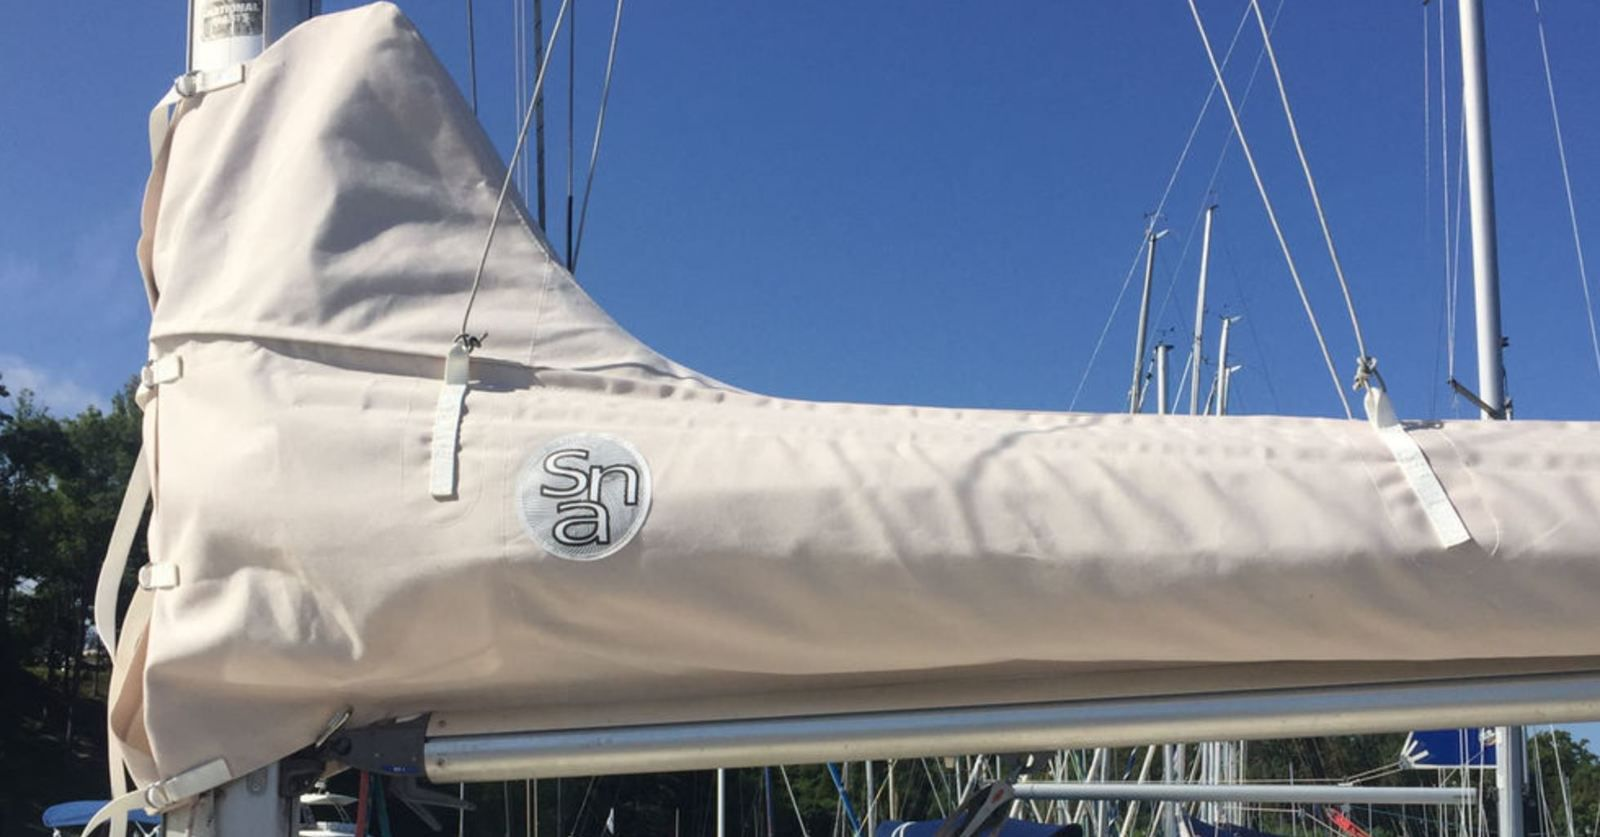 Lazybags and genoa covers - Sail-Cover.com develops a service dedicated to boat charter companies